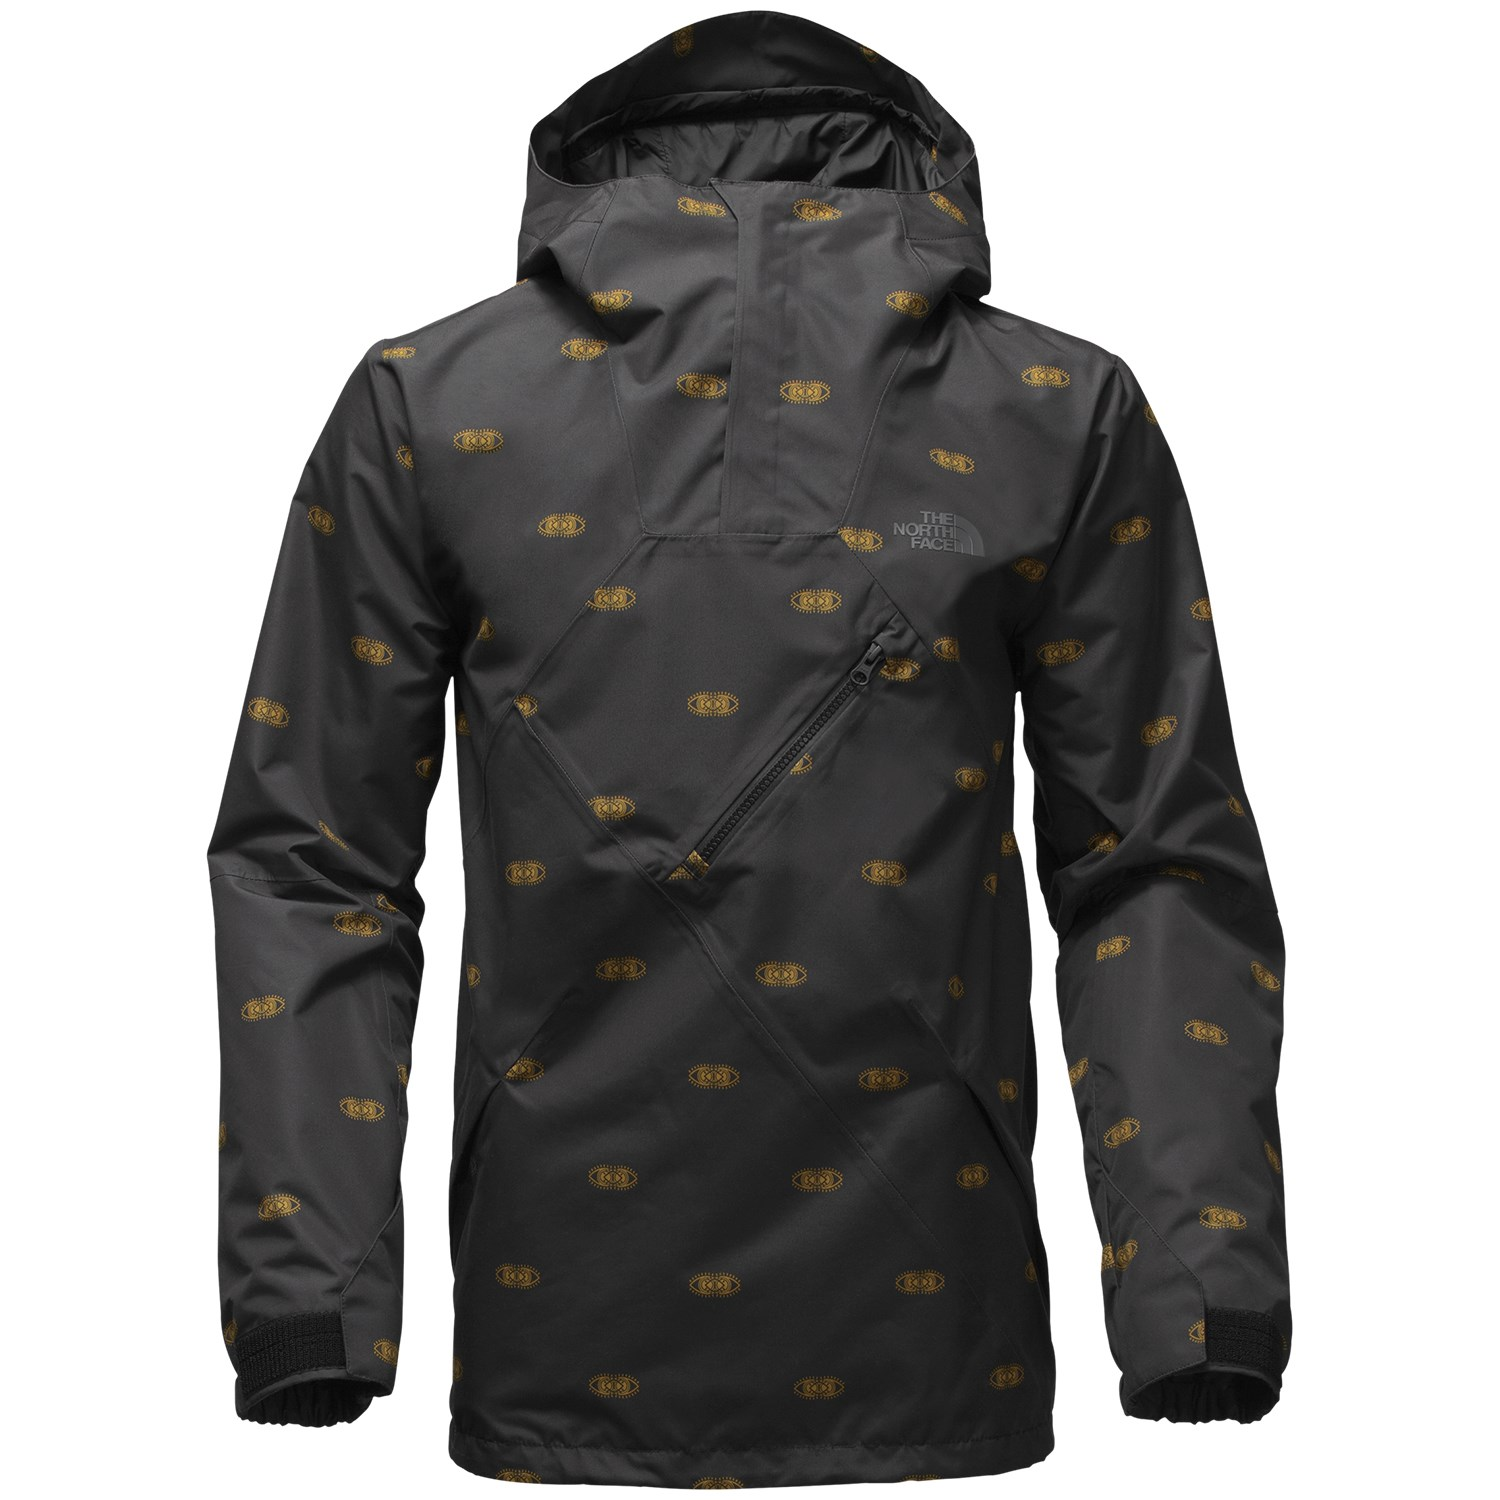 9fbcaf004398 The North Face Dubs Anorak Jacket